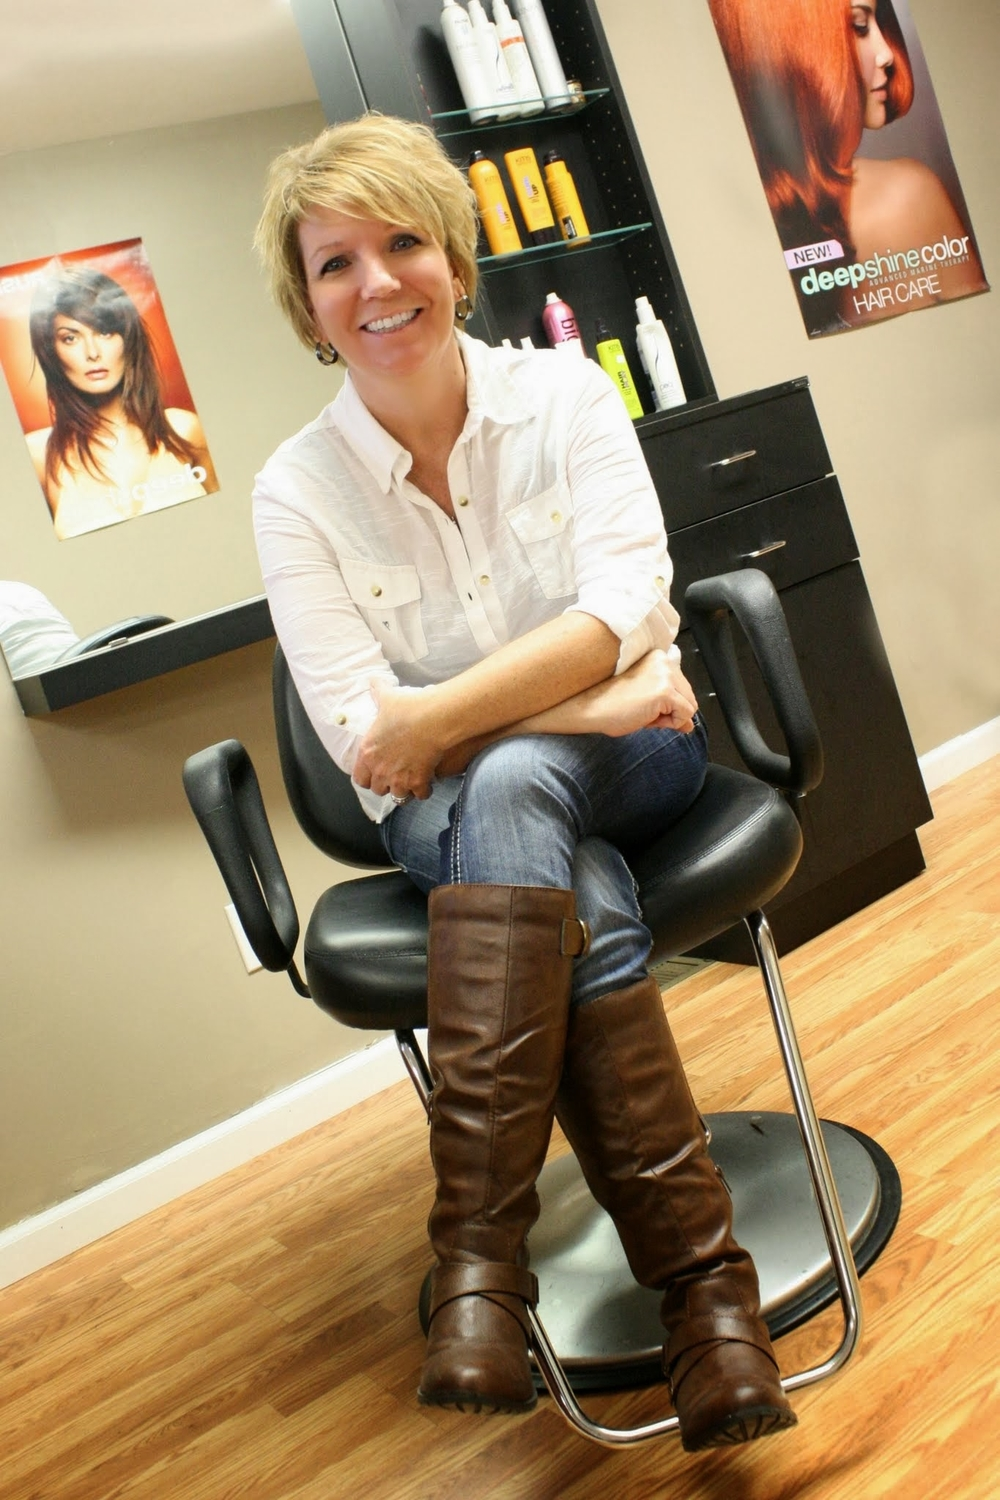 Becky Owner/Stylist/Electrologist Becky has been with the salon 18 years. She is a color specialist. Ready to create color, shine & texture that makes your hair look and feel its best! She is also licensed & experienced at permanent hair removal. She is available by appointment Mondays 9am-8pm; Tuesday 9am-8pm; Thursday 9am-6pm & Saturday 8am-1pm.